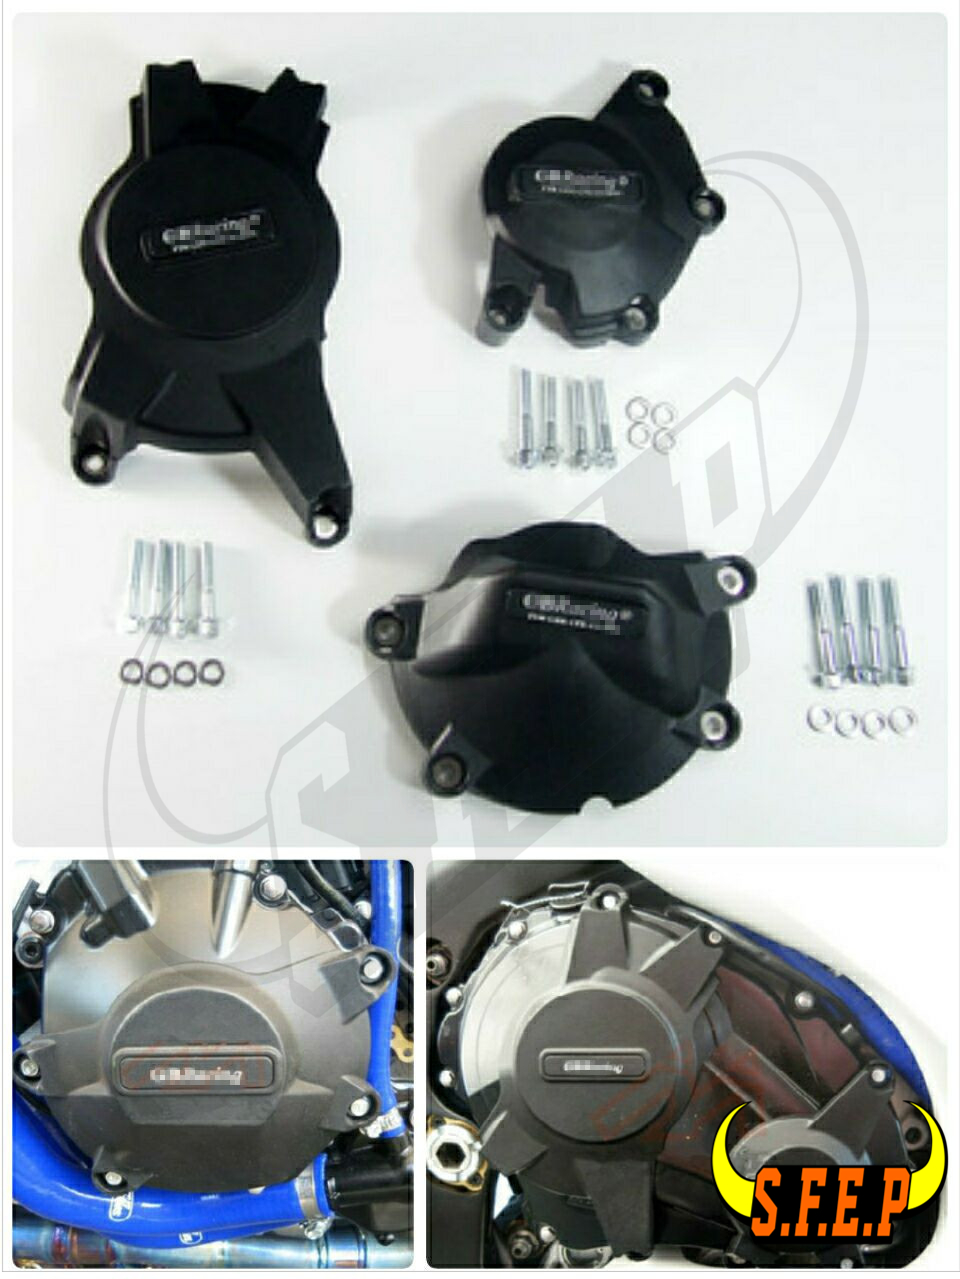 Motorcycle Engine Case Guard Protector Cover GB Racing For Suzuki GSXR1000 K9 L6 2009 2010 2011